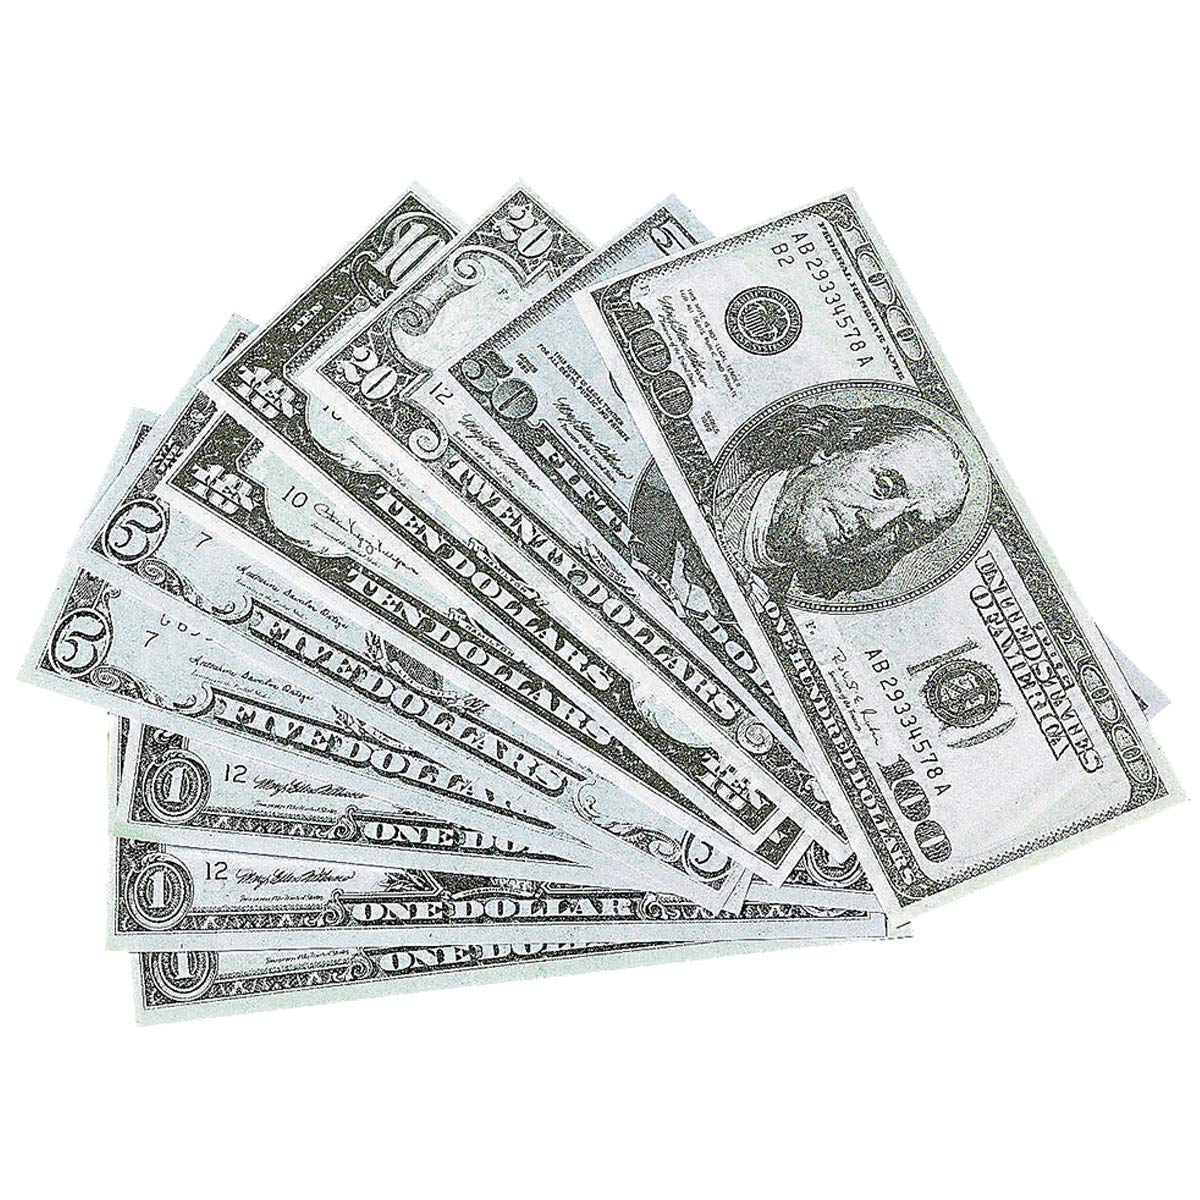 Kicko Play Money - 2 Packs of 100 - 4 X 1.75 Inches, Includes 1, 5, 10, 20, 50 and 100 Fake Dollar Bills - Pretend Play for Kids, Great Toy, Party Favors, Bag Stuffers, Fun, Gift, Prize by Kicko